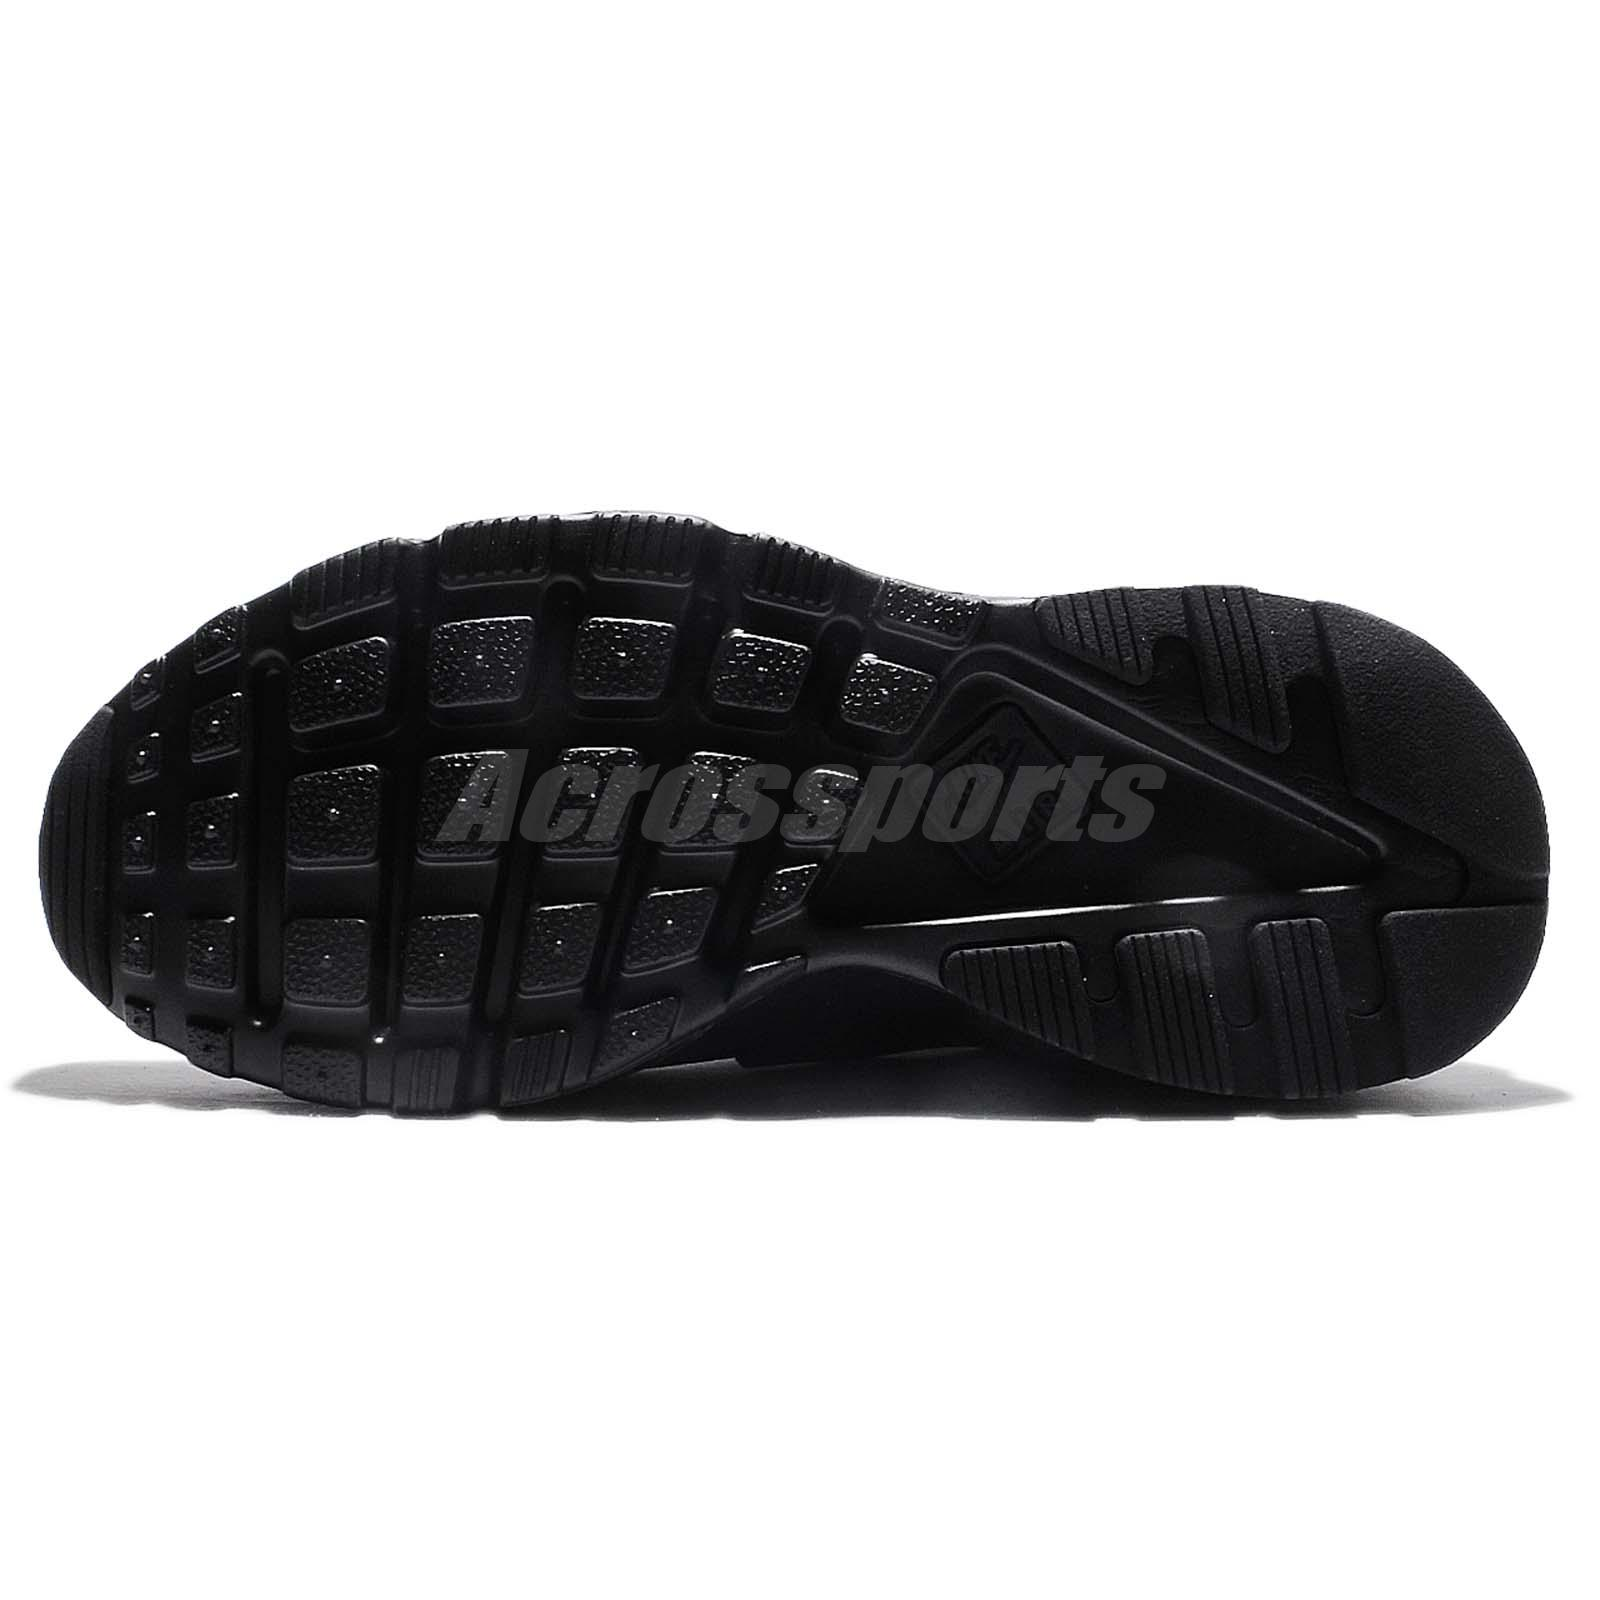 quality design 69766 4ac0c Clothing, Shoes   Accessories NEW NIKE AIR HUARACHE RUN ULTRA Running Shoes  Triple Black Blackout 819685-002 h